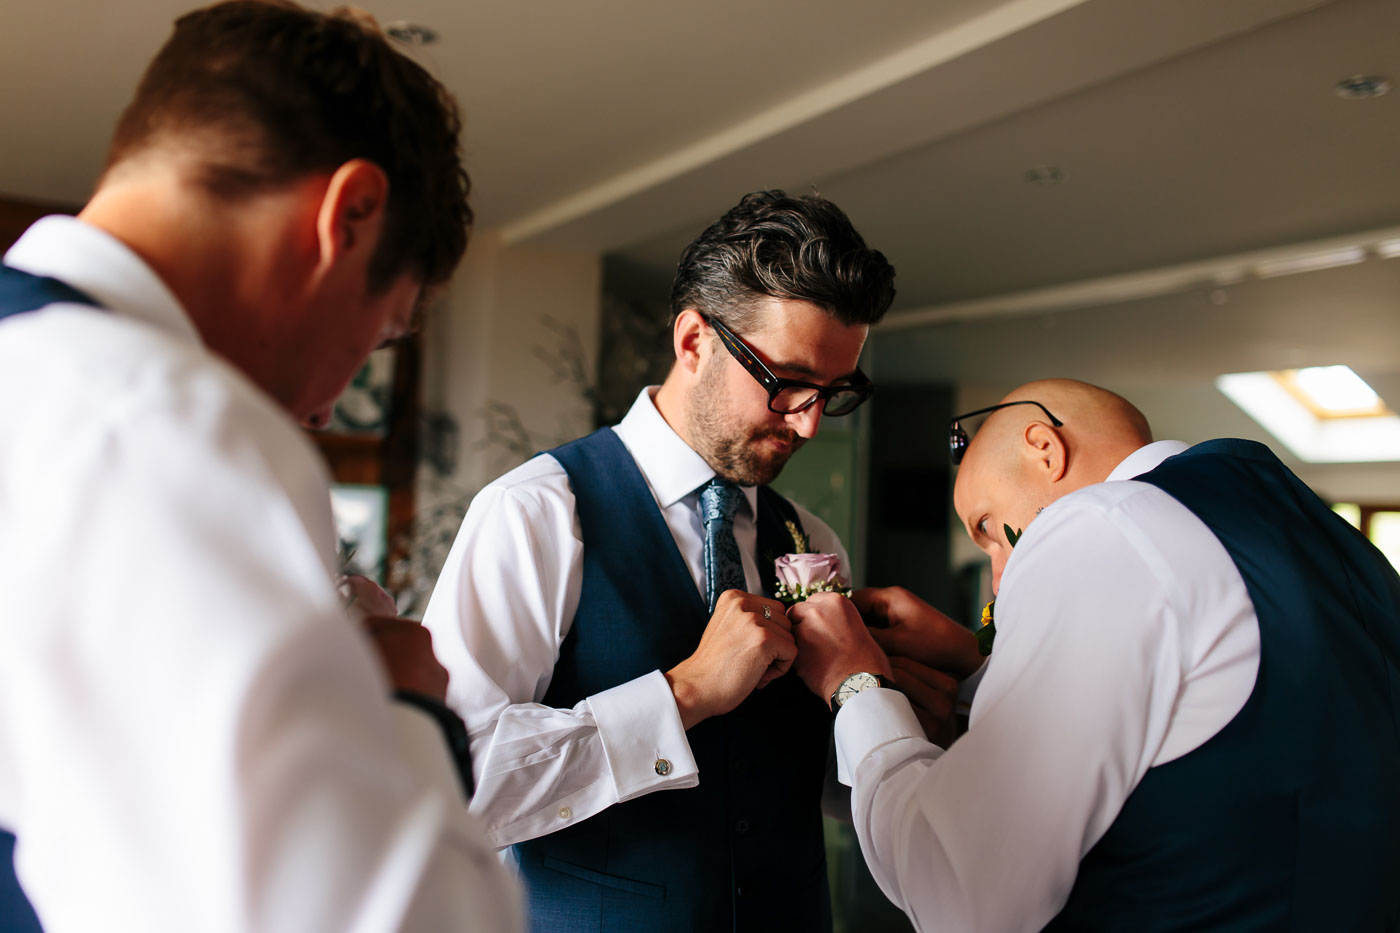 groom helping best man with buttonhole